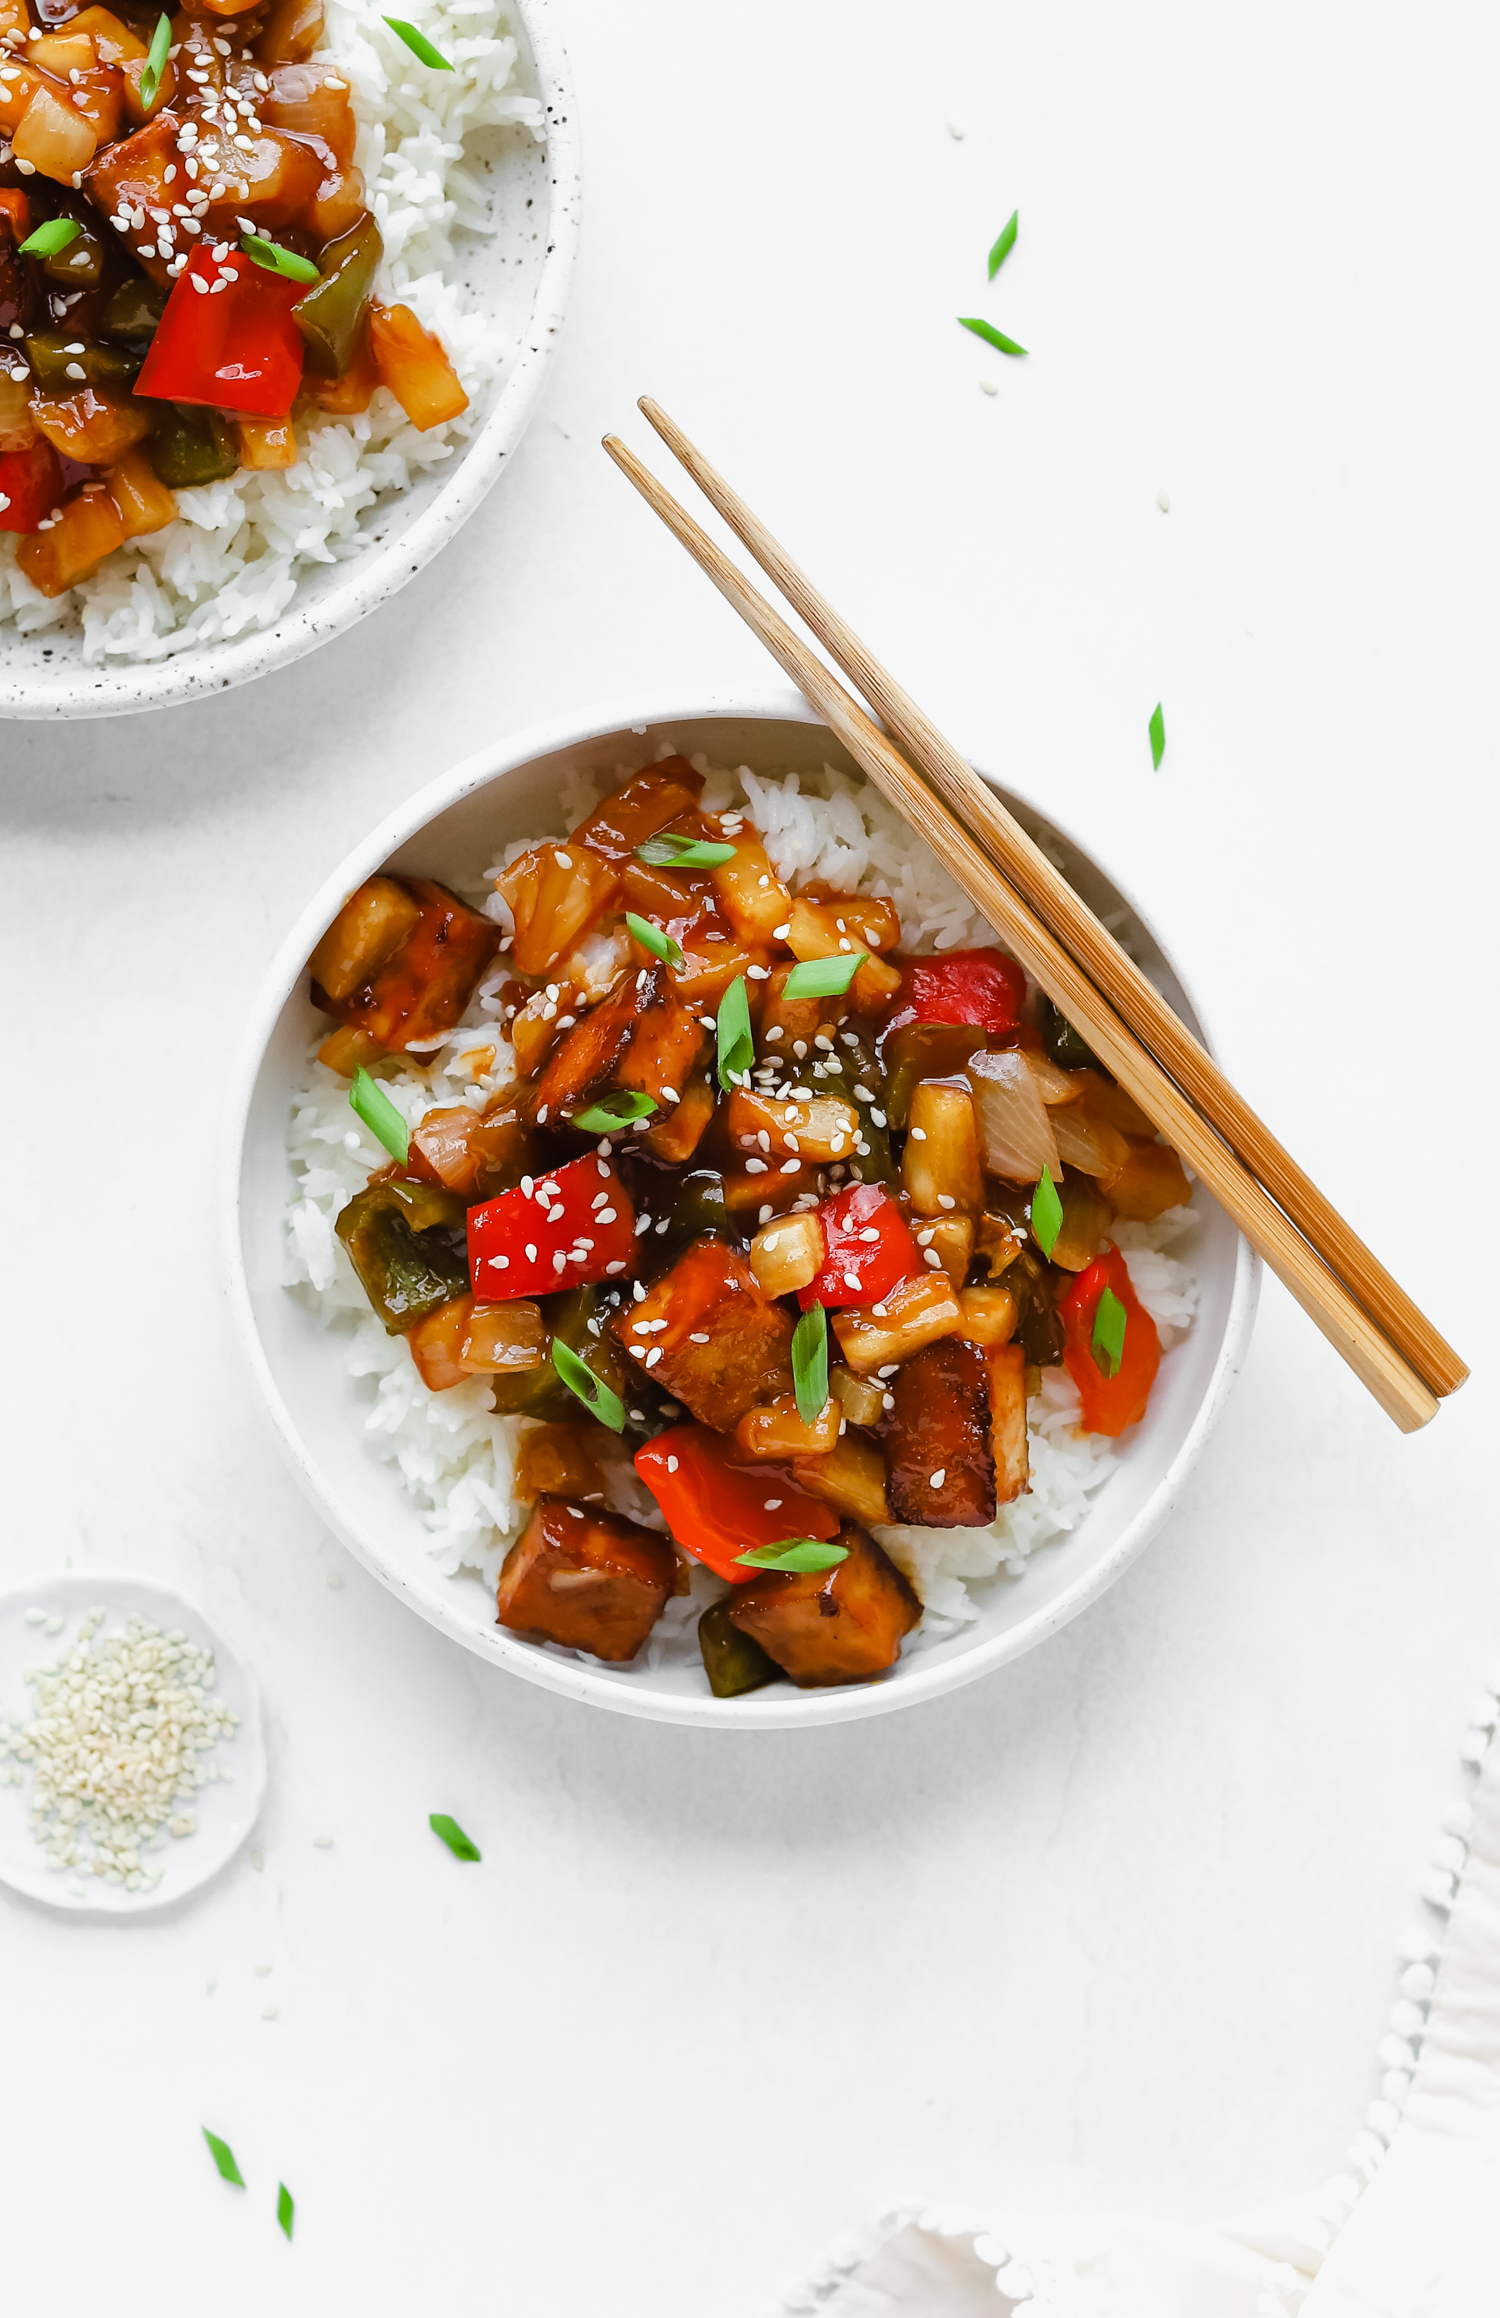 Delicious baked vegan sweet and sour tofu in a bowl topped with green onions and white sesame seeds.